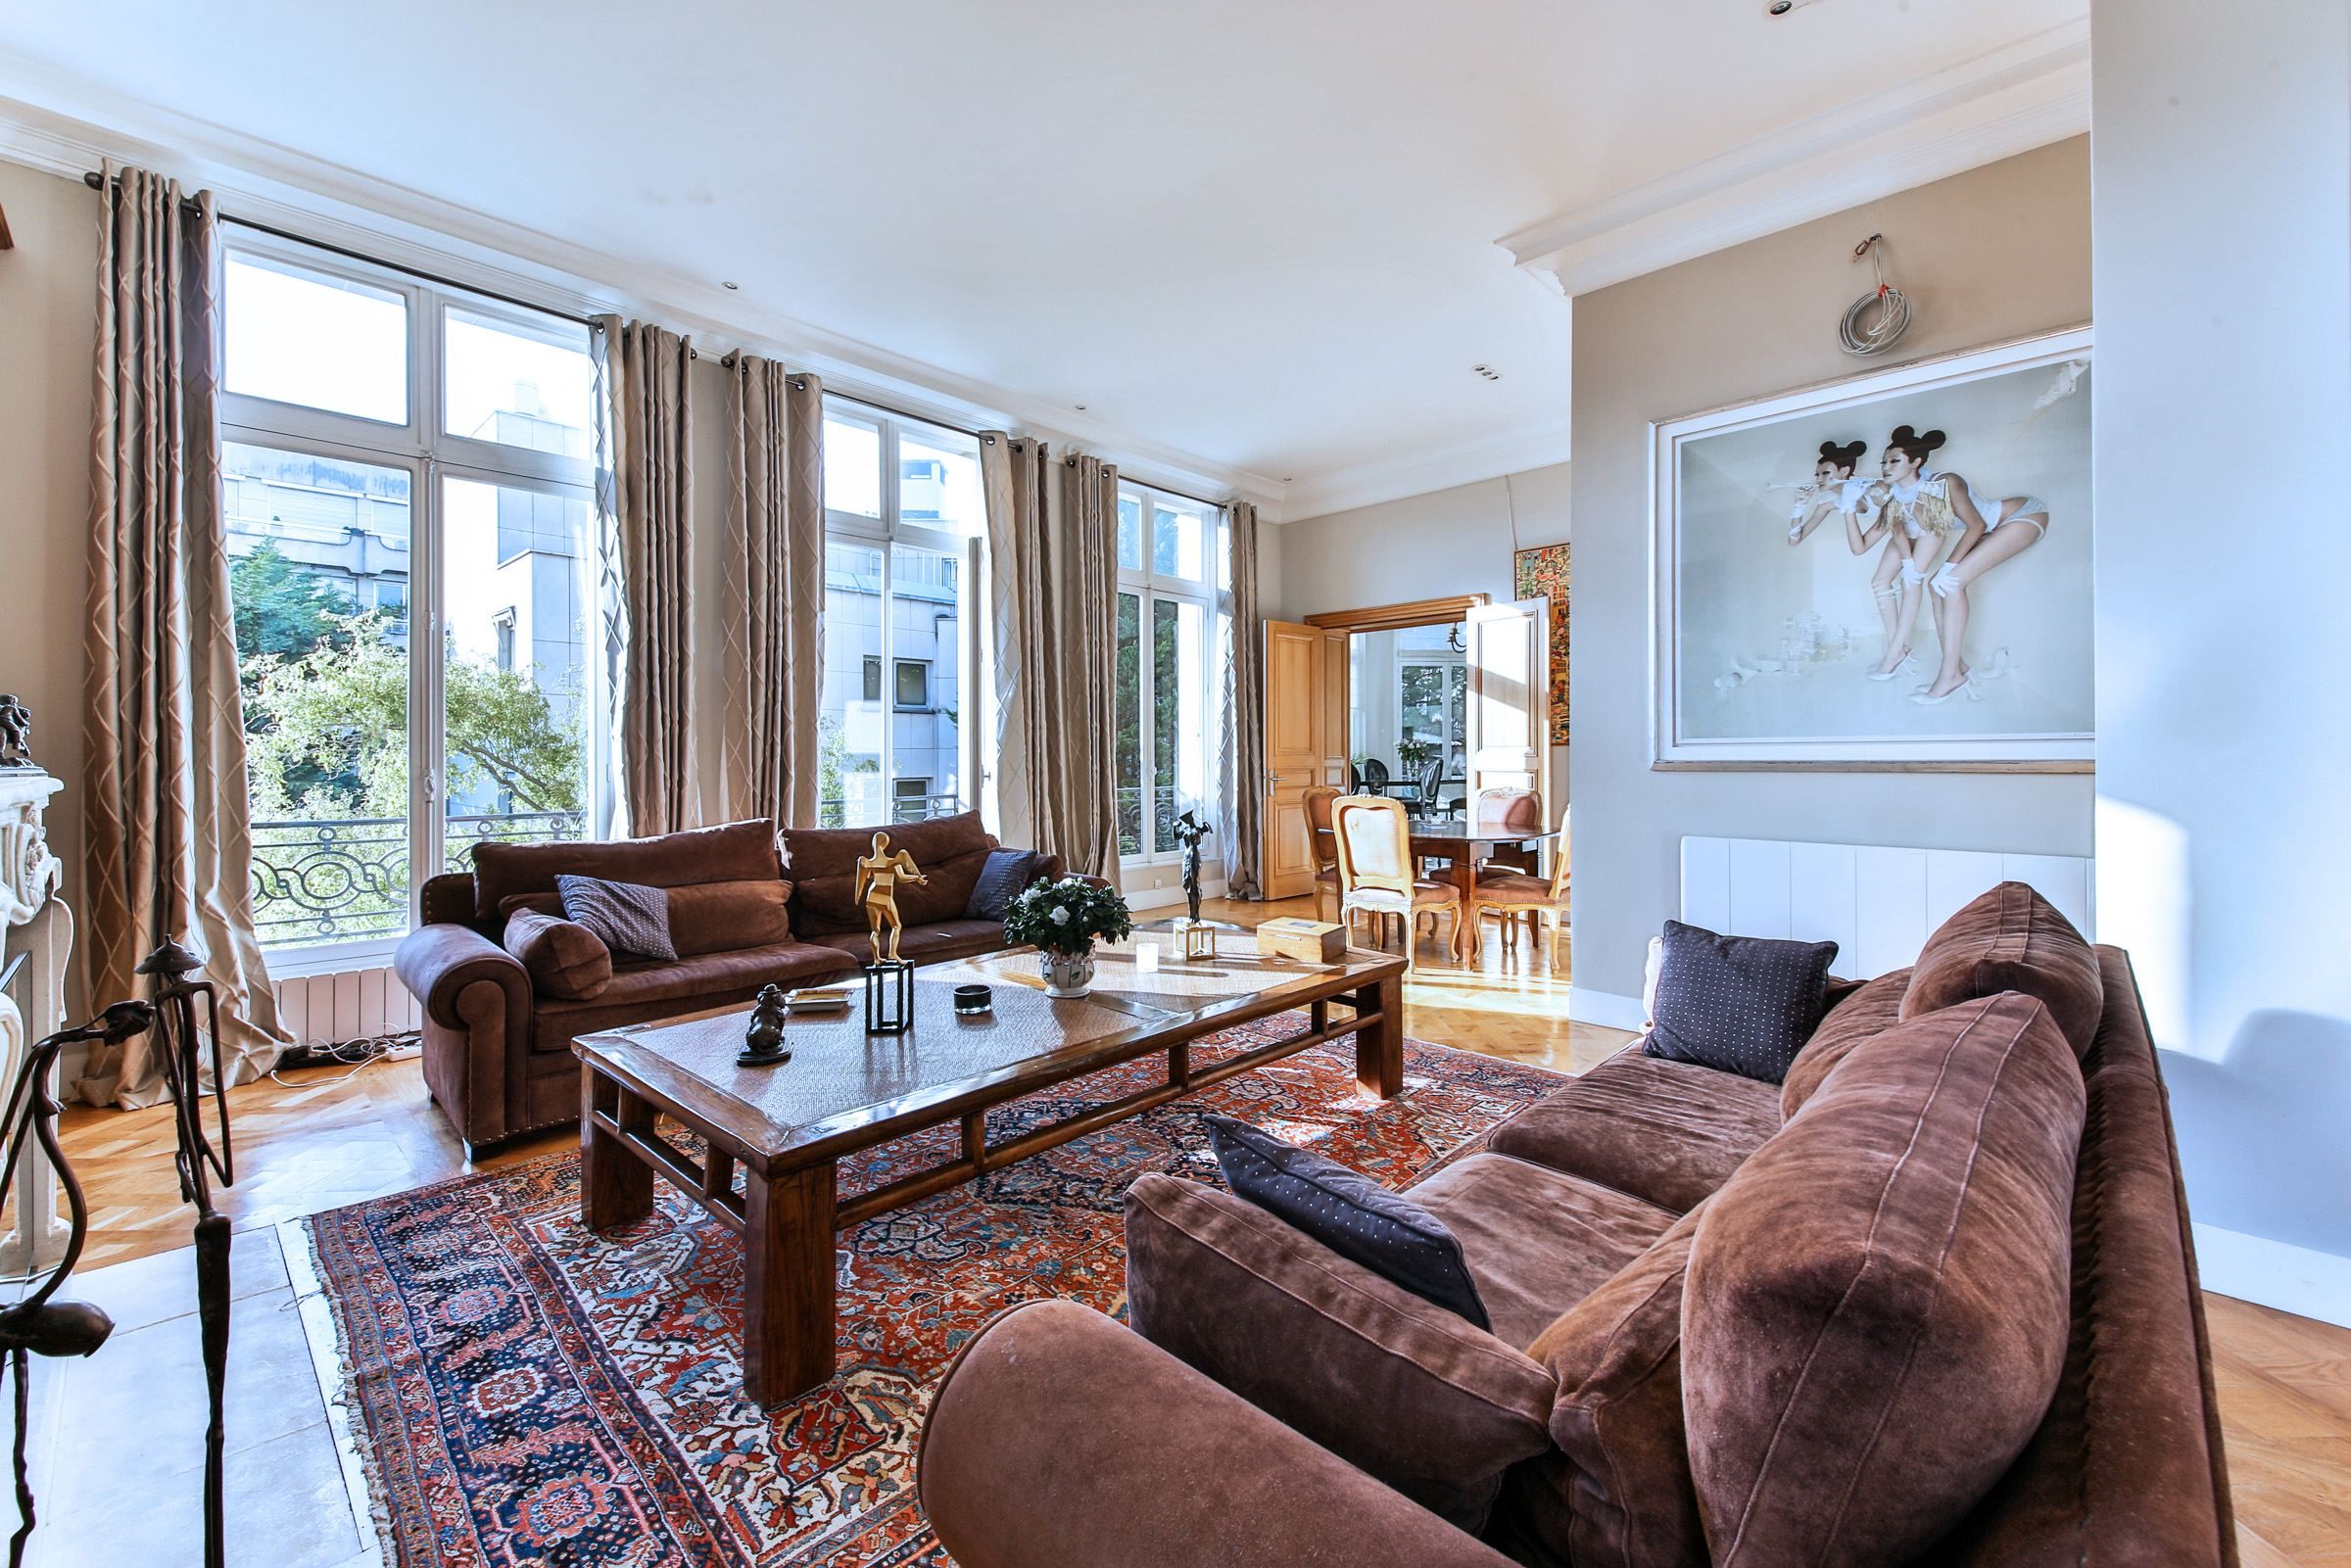 Property For Sale at Neuilly - Duc d'Orléans.Apartment. South-West exposure